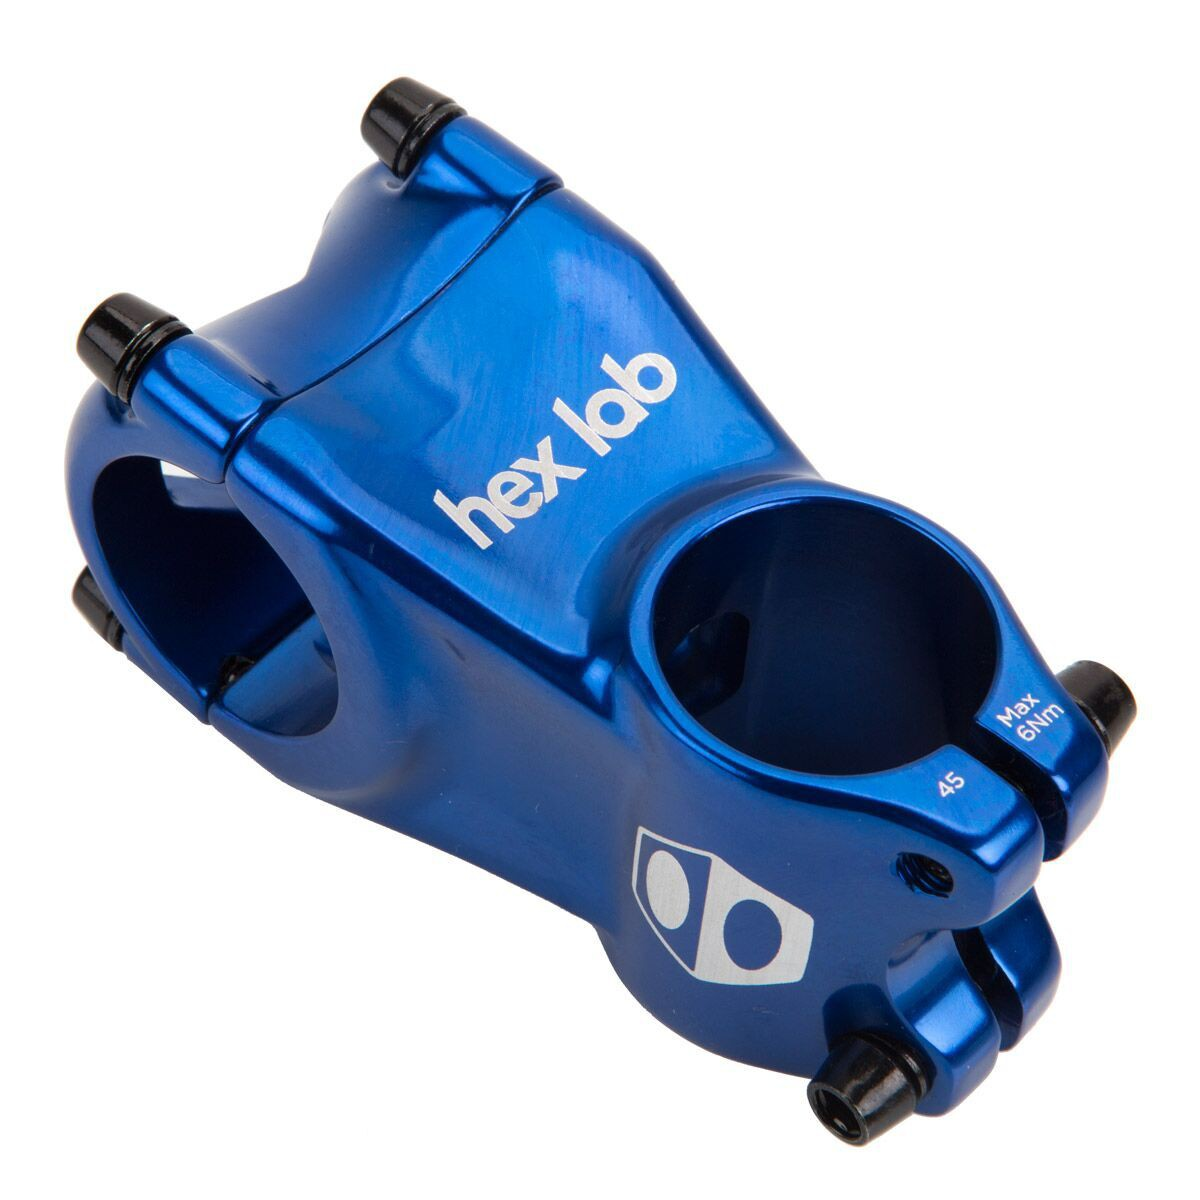 BOX HEX LAB MINI 28.6 STEM 1""